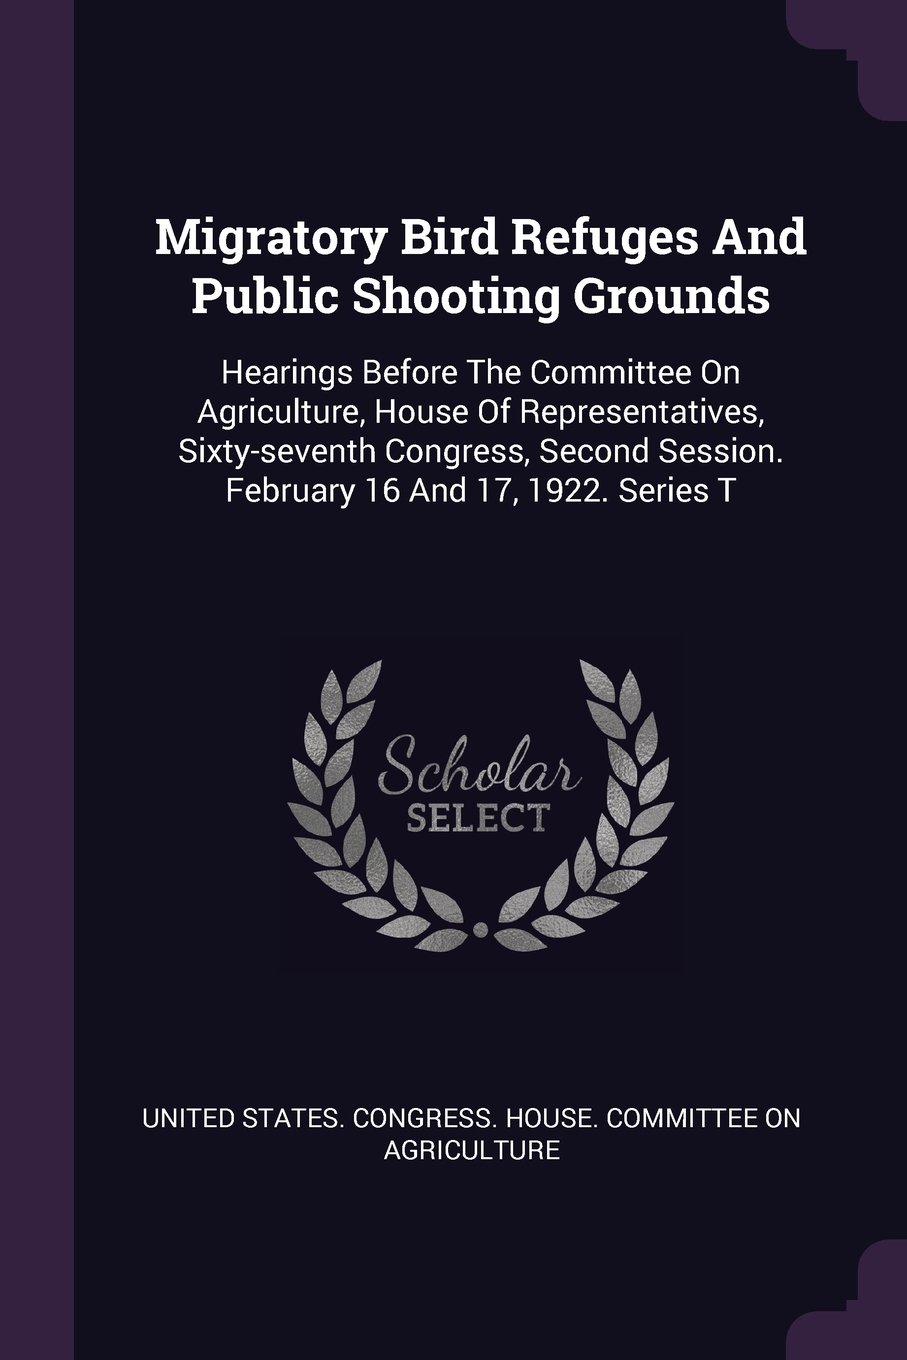 Migratory Bird Refuges And Public Shooting Grounds: Hearings Before The Committee On Agriculture, House Of Representatives, Sixty-seventh Congress, Second Session. February 16 And 17, 1922. Series T PDF